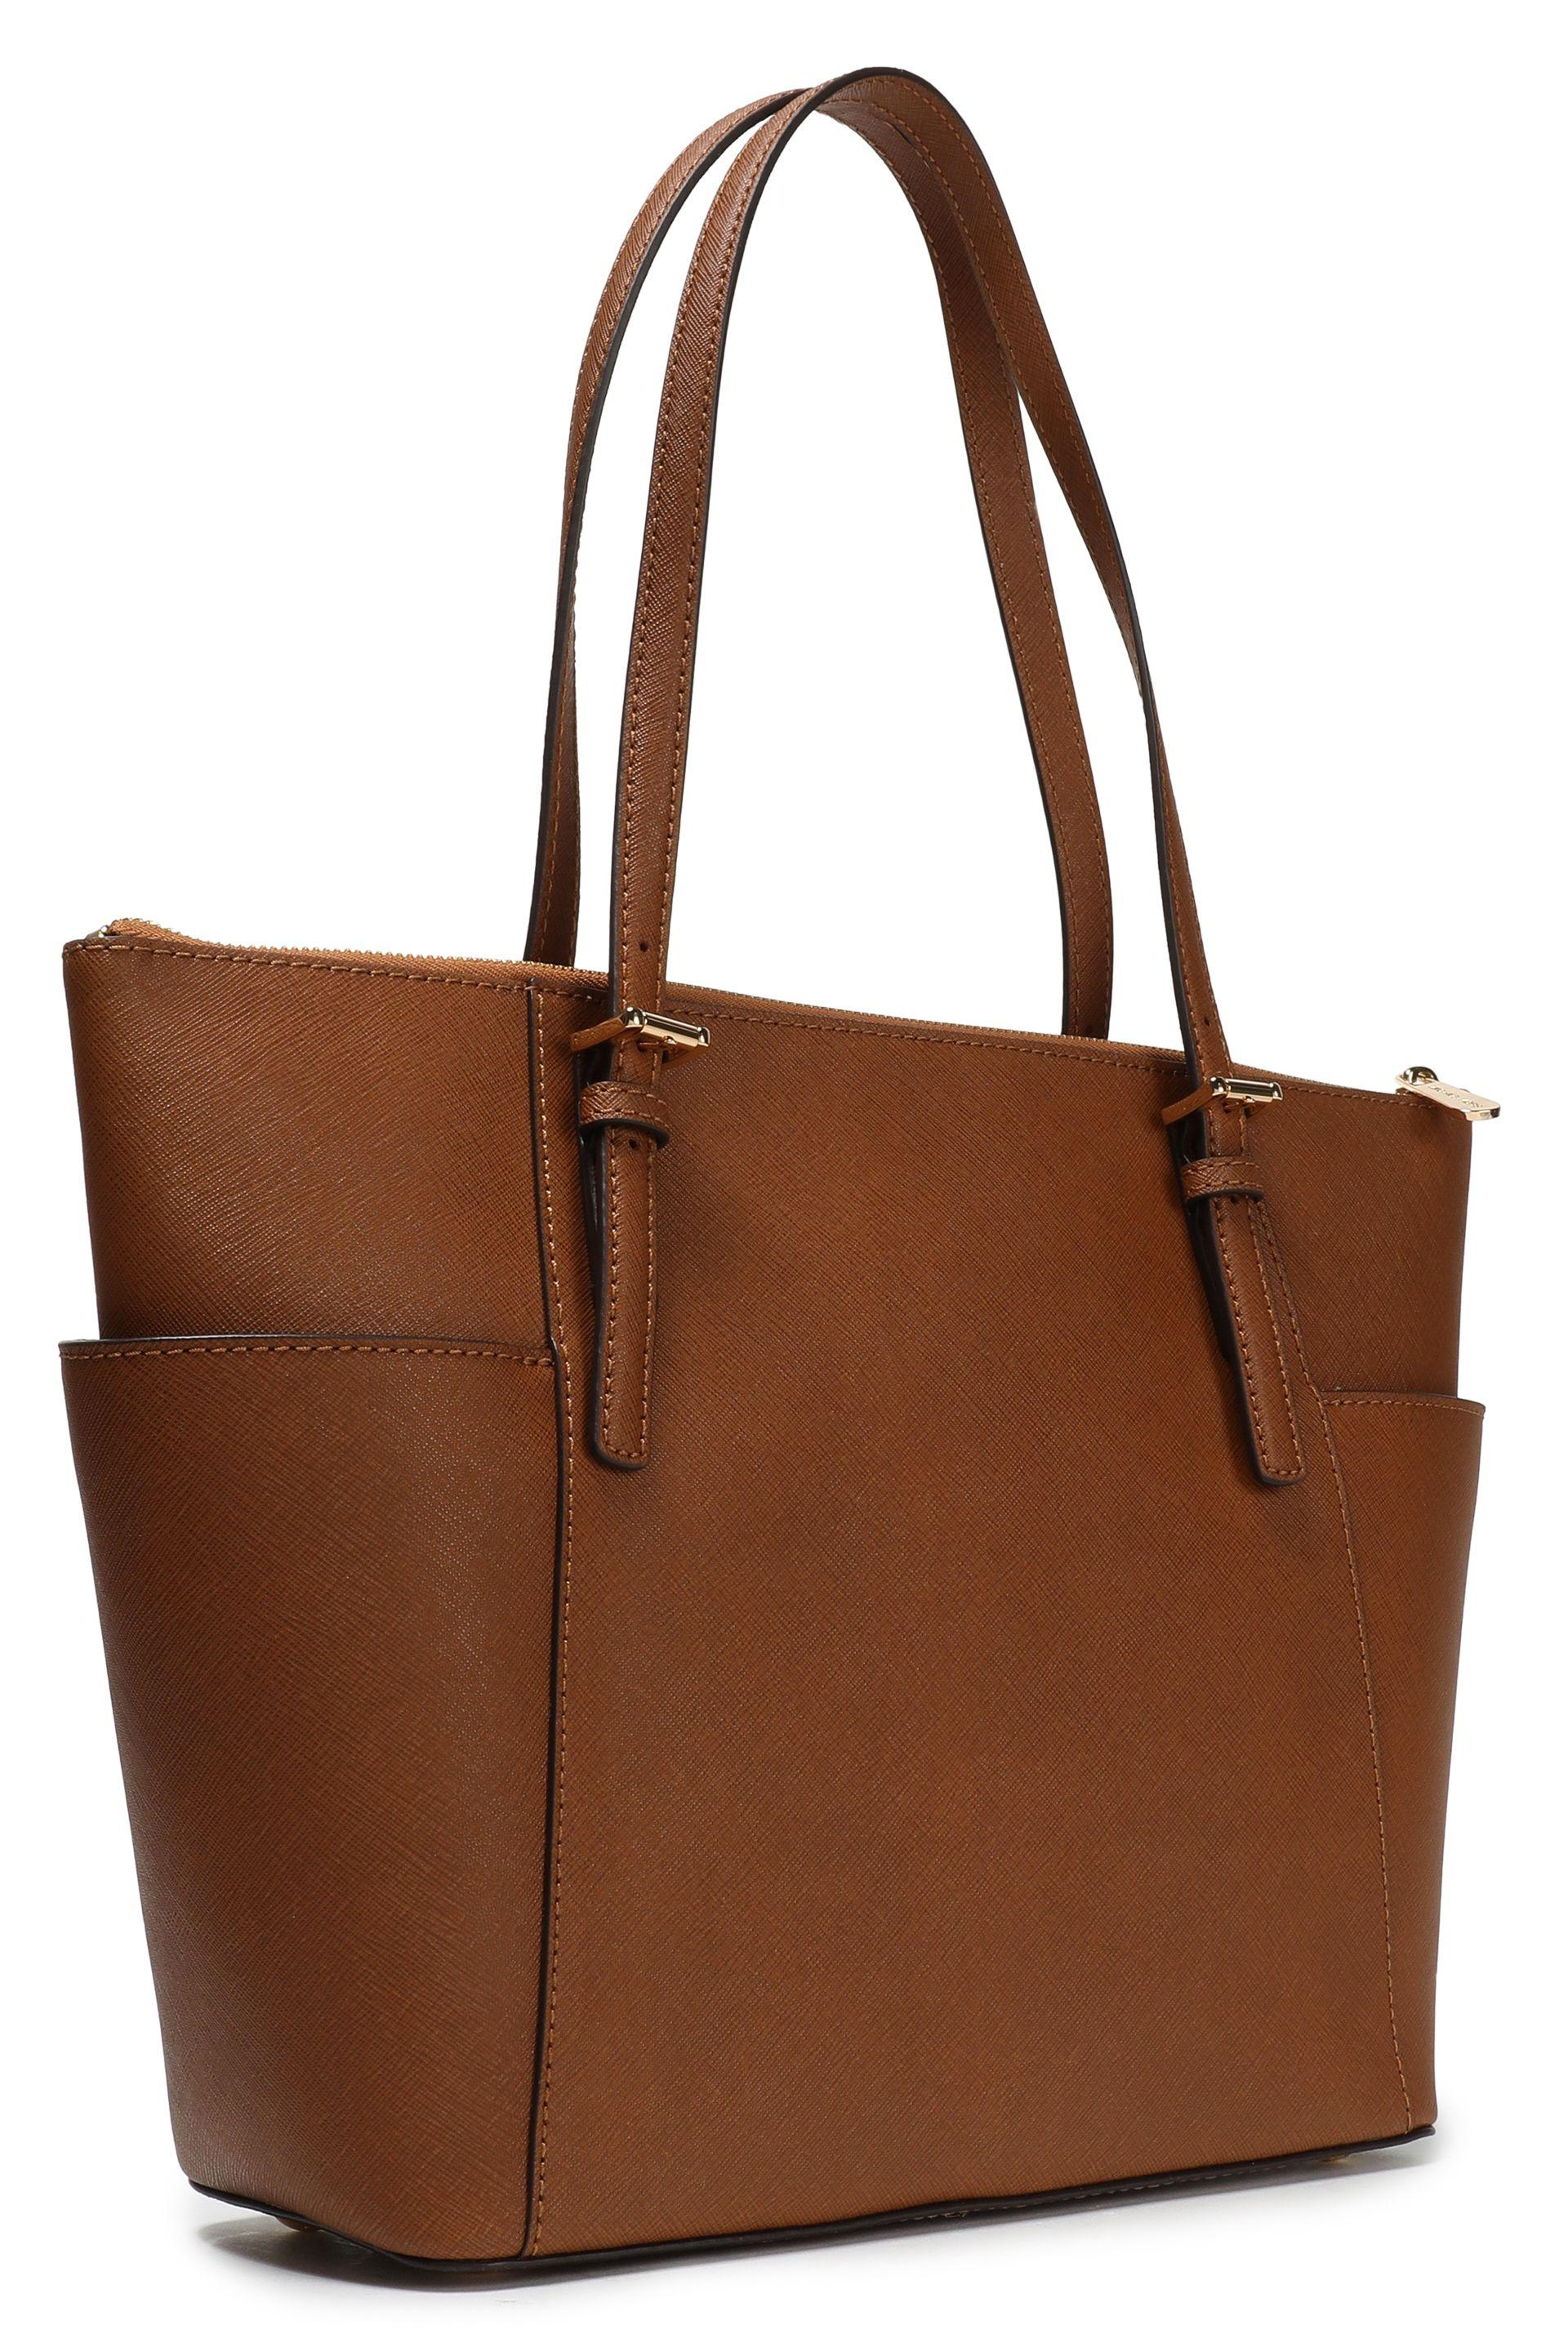 MICHAEL Michael Kors Jet Set Textured-leather Tote Brown